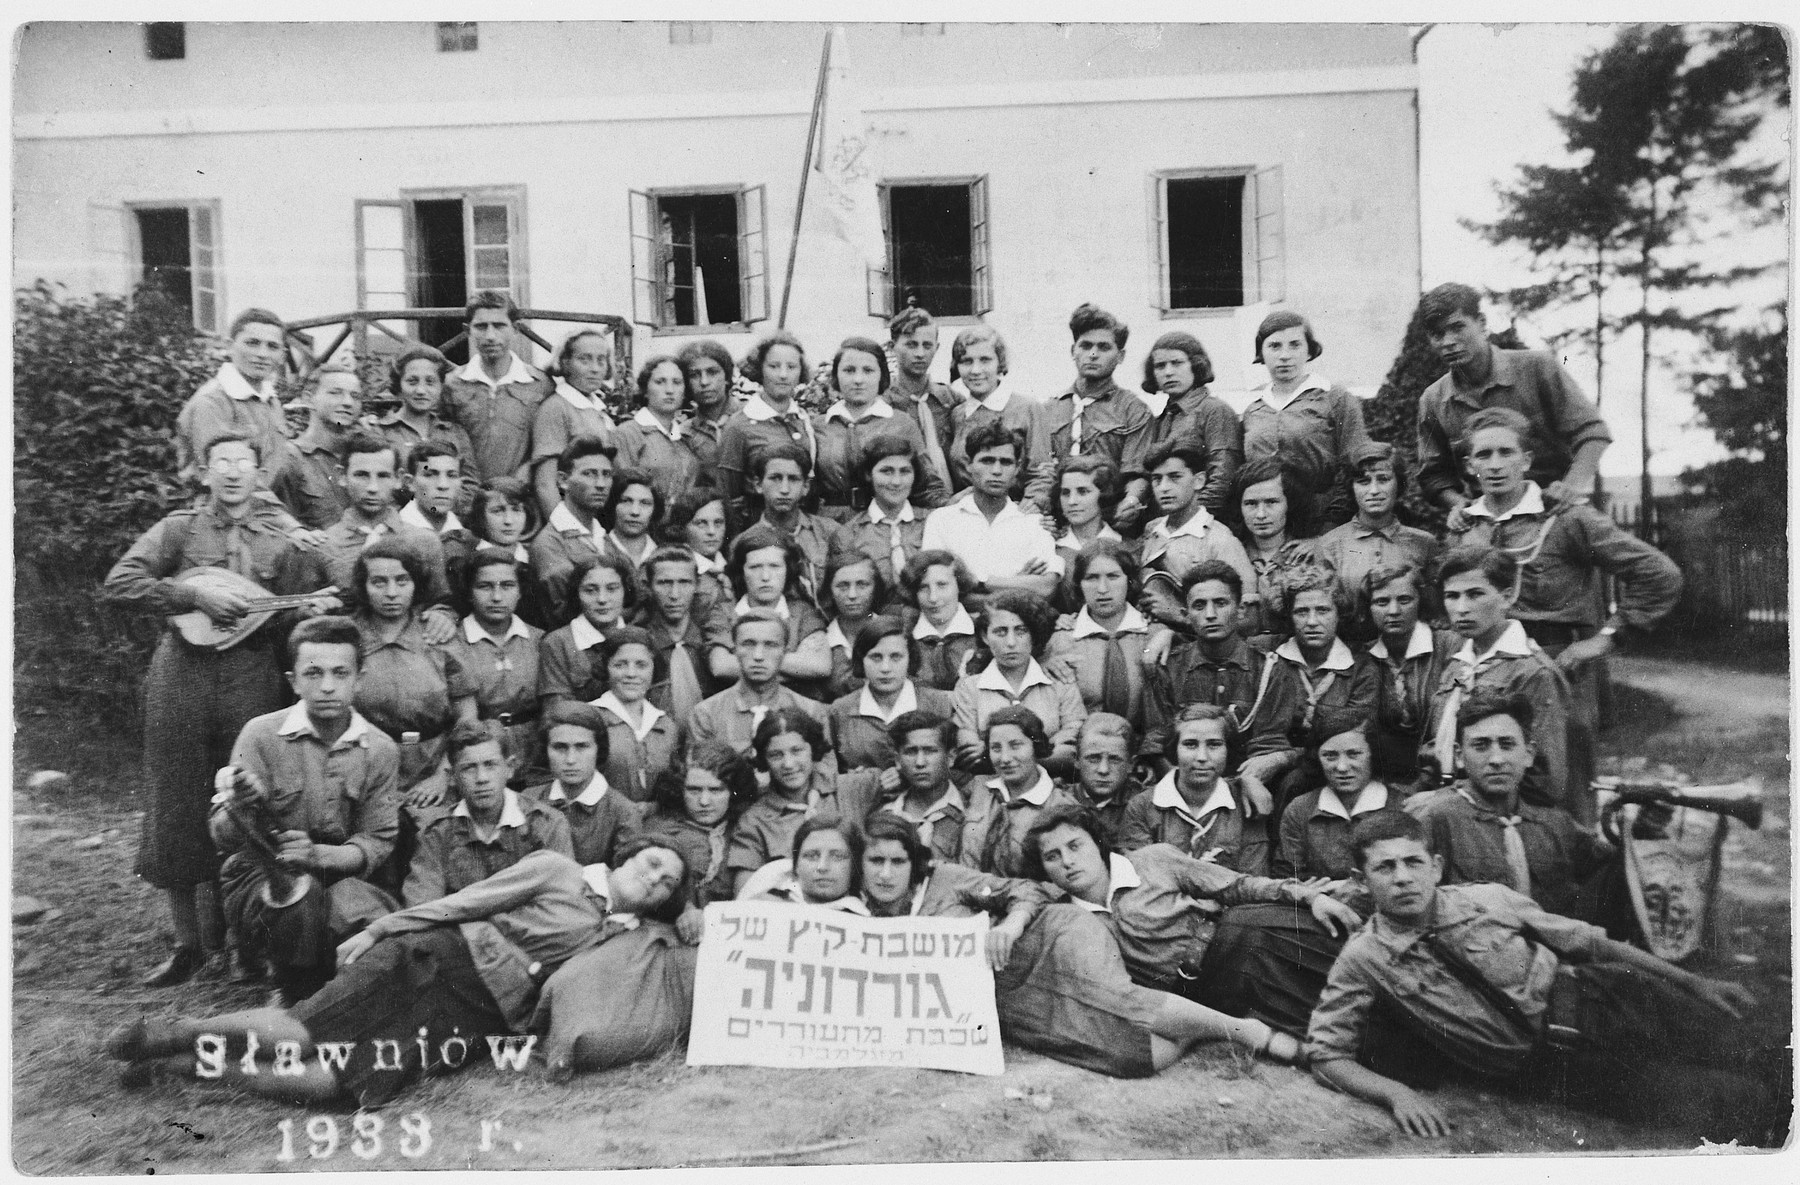 Group portrait of members of the Gordonia Zionist youth movement at a summer camp in Slawniow, Poland.